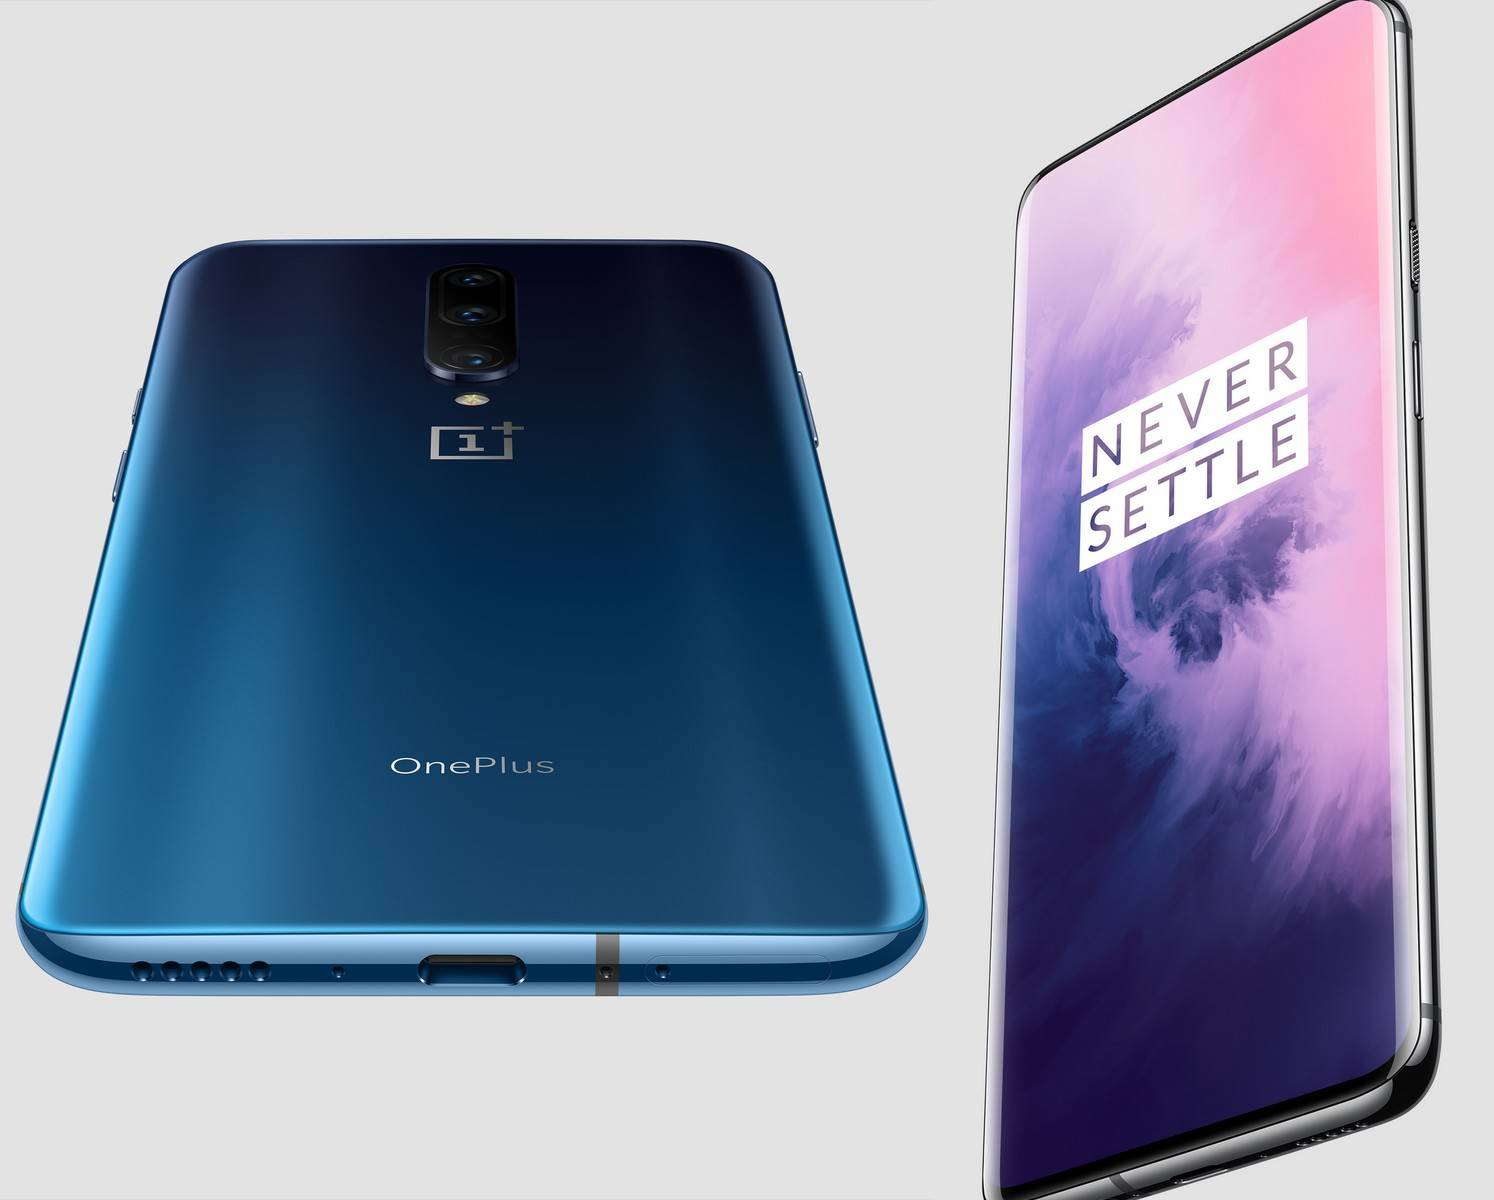 OnePlus 7 Pro vs OnePlus 7: What buyers will get and not get